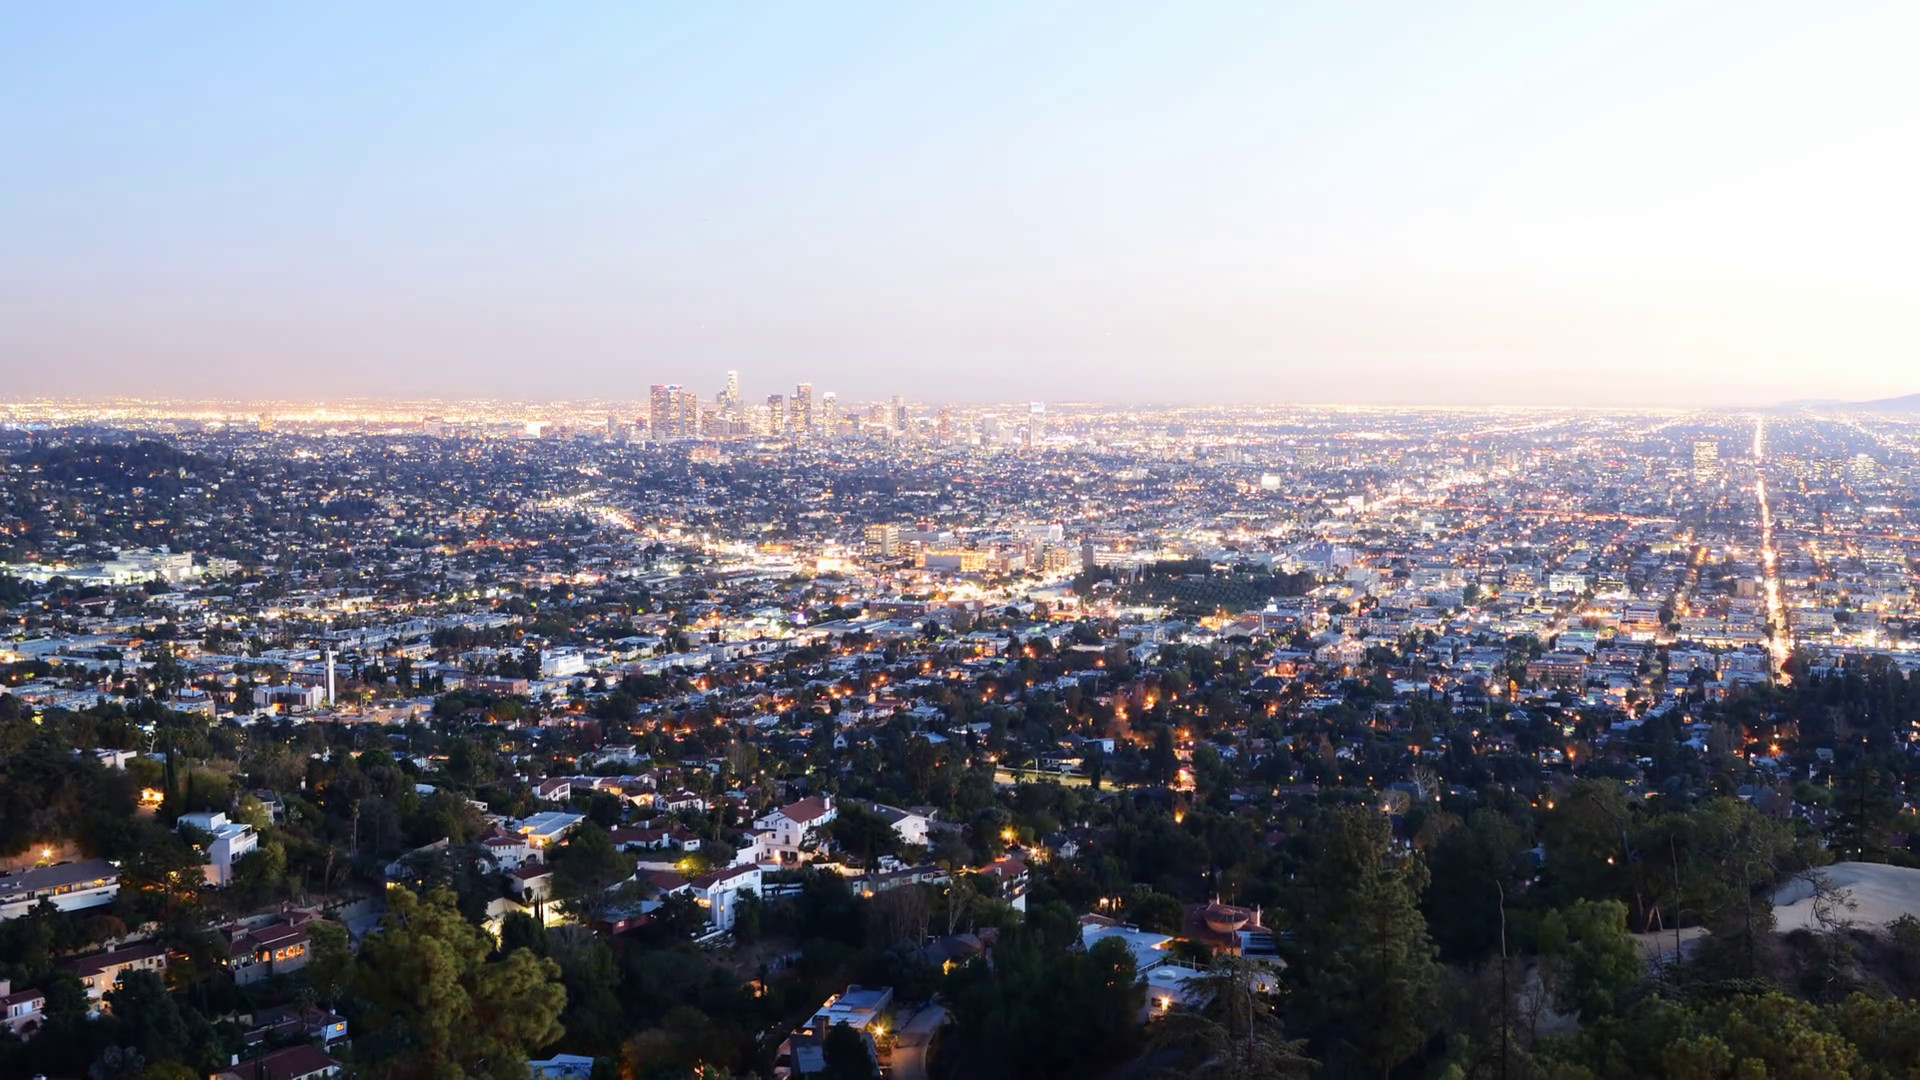 4K Downtown Los Angeles Skyline Twilight Time Lapse -Zoom Out- Stock Video  Footage – VideoBlocks